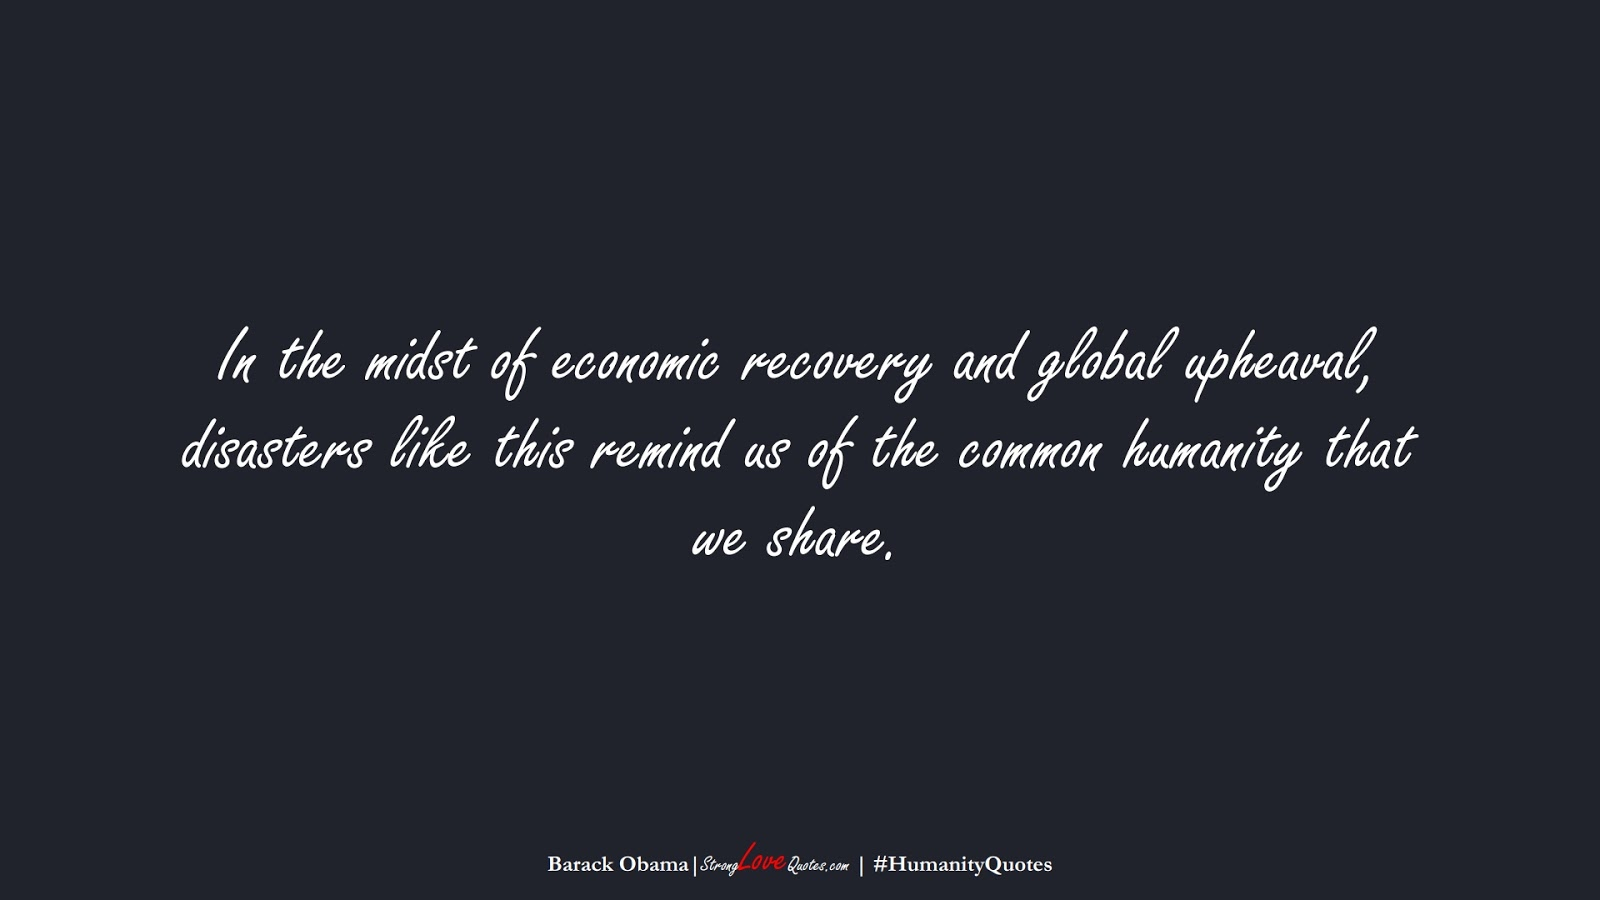 In the midst of economic recovery and global upheaval, disasters like this remind us of the common humanity that we share. (Barack Obama);  #HumanityQuotes